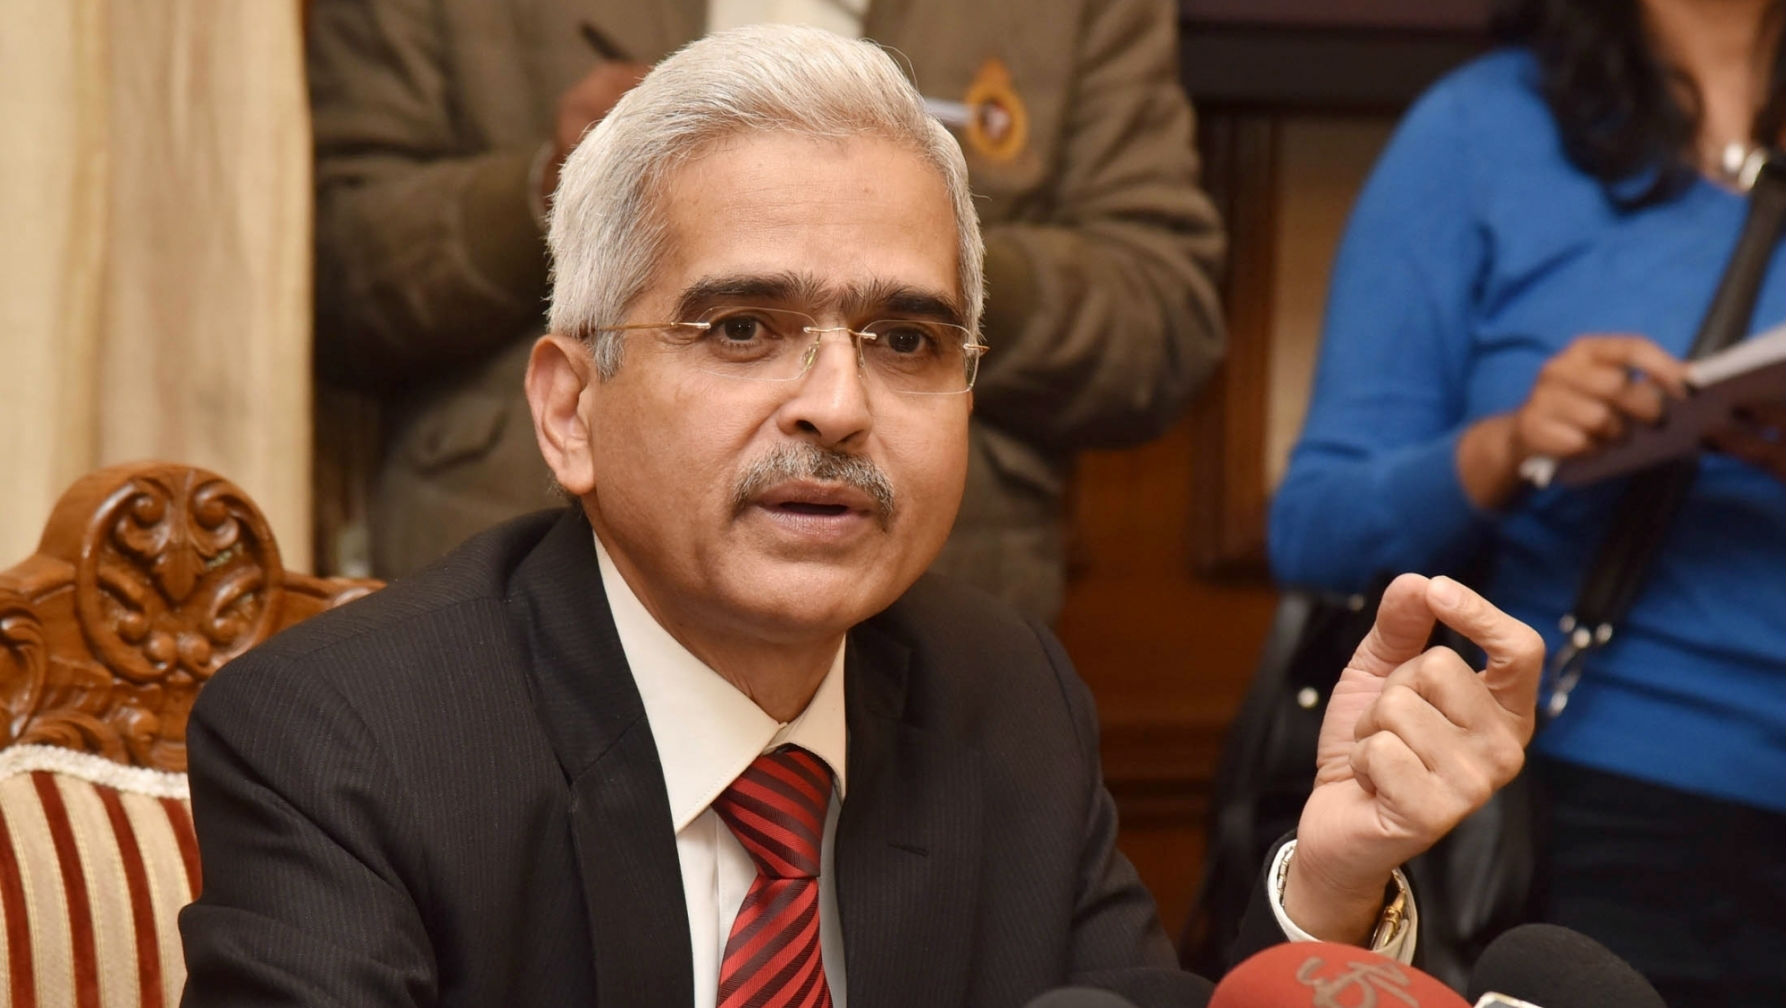 RBI Governor Shaktikanta Das to Address Media Today After FM Nirmala Sitharaman Announces Rs 1.75 Lakh Crore Package Amid Lockdown